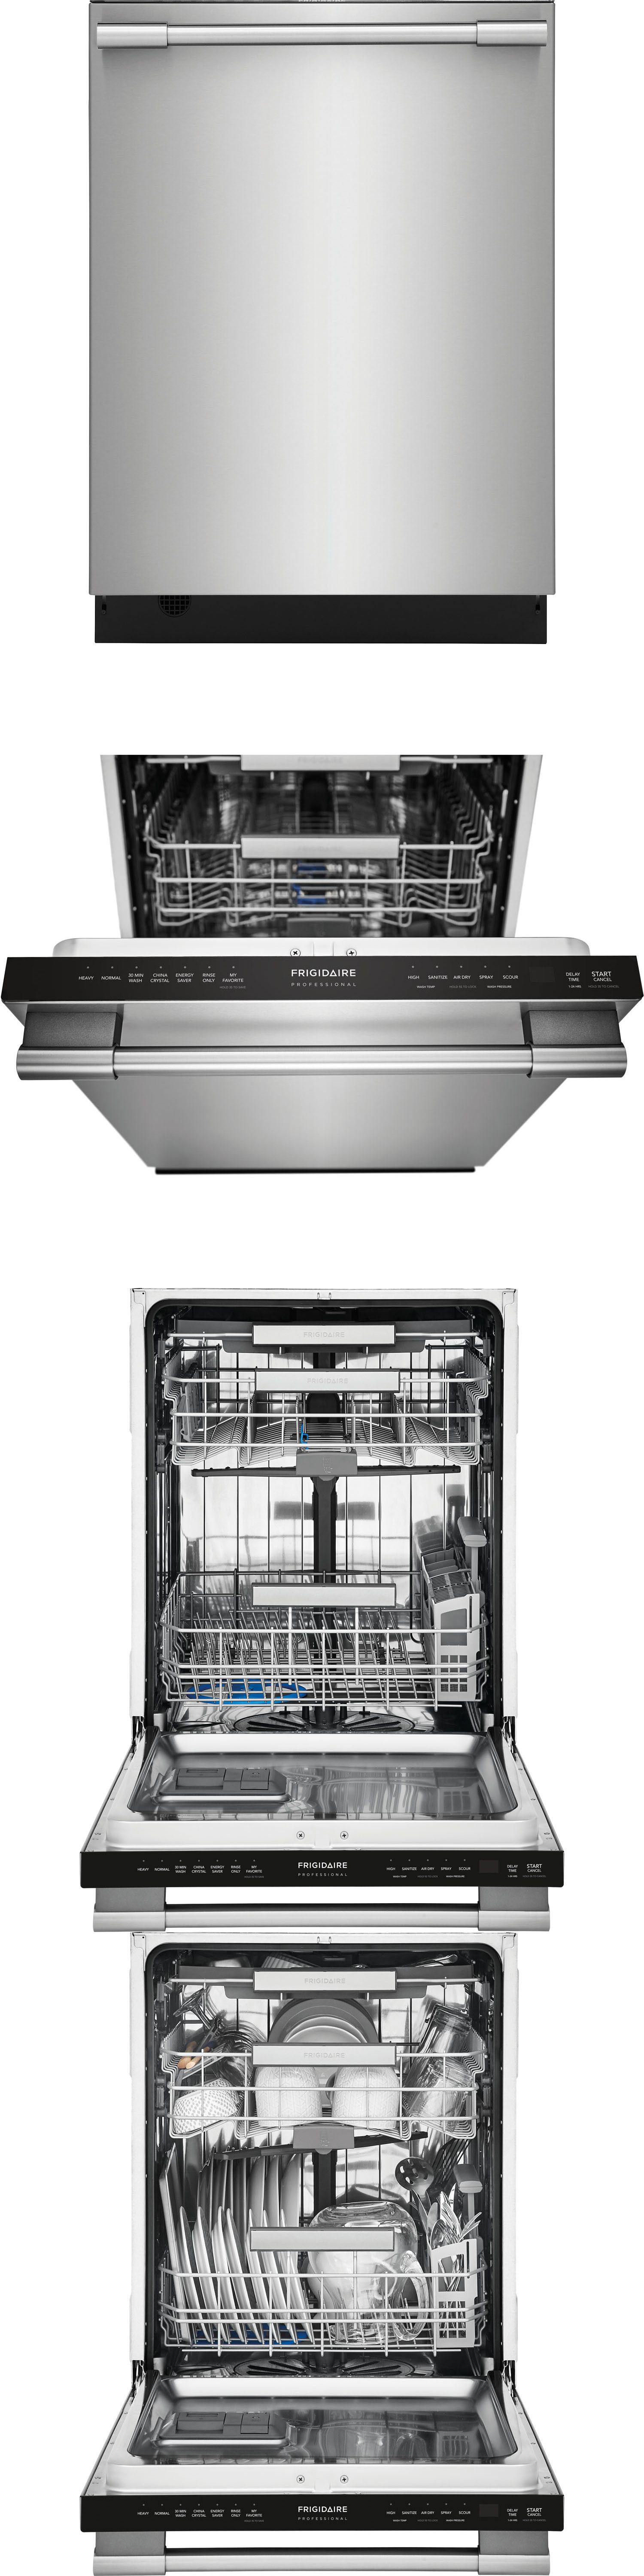 Details About Frigidaire Professional Stainless 24 Built In